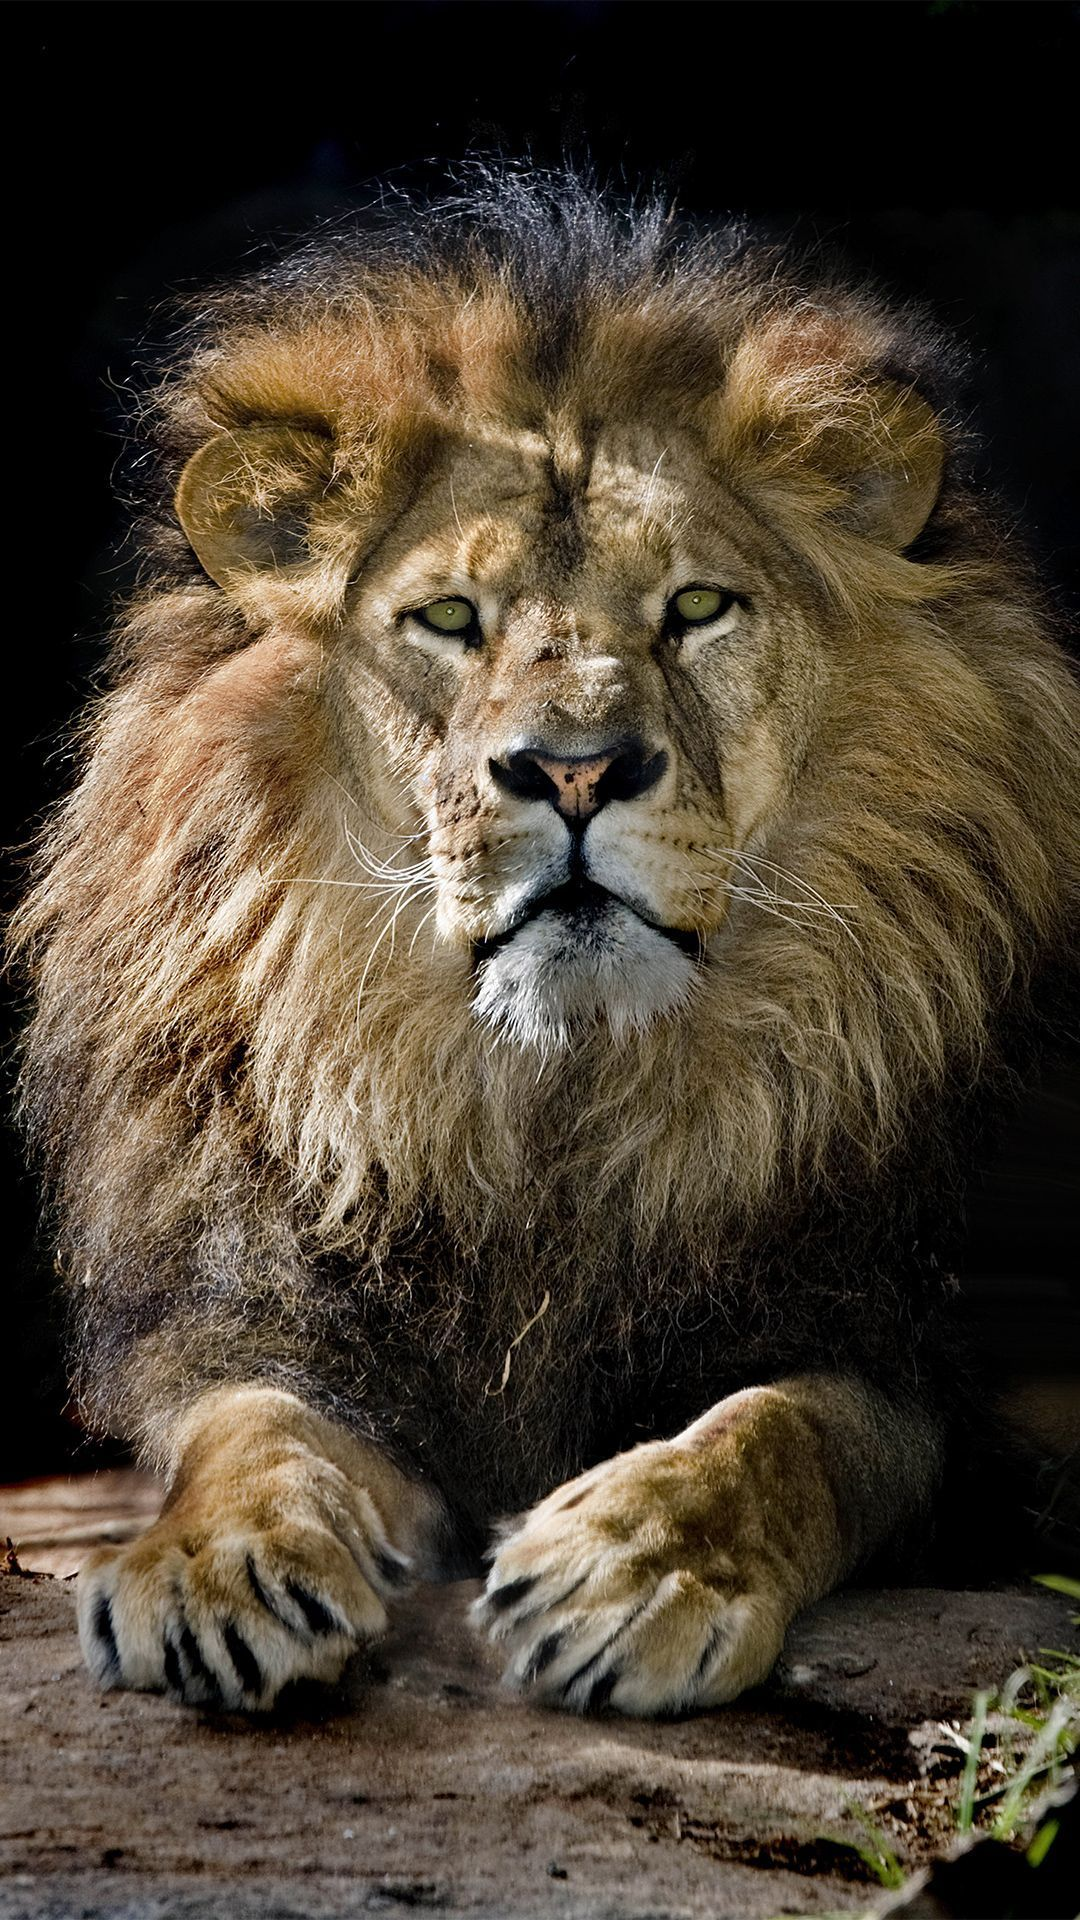 Lion Iphone Android Iphone Desktop Hd Backgrounds Wallpapers 1080p 4k In 2020 Lion Pictures Animals Beautiful Animals